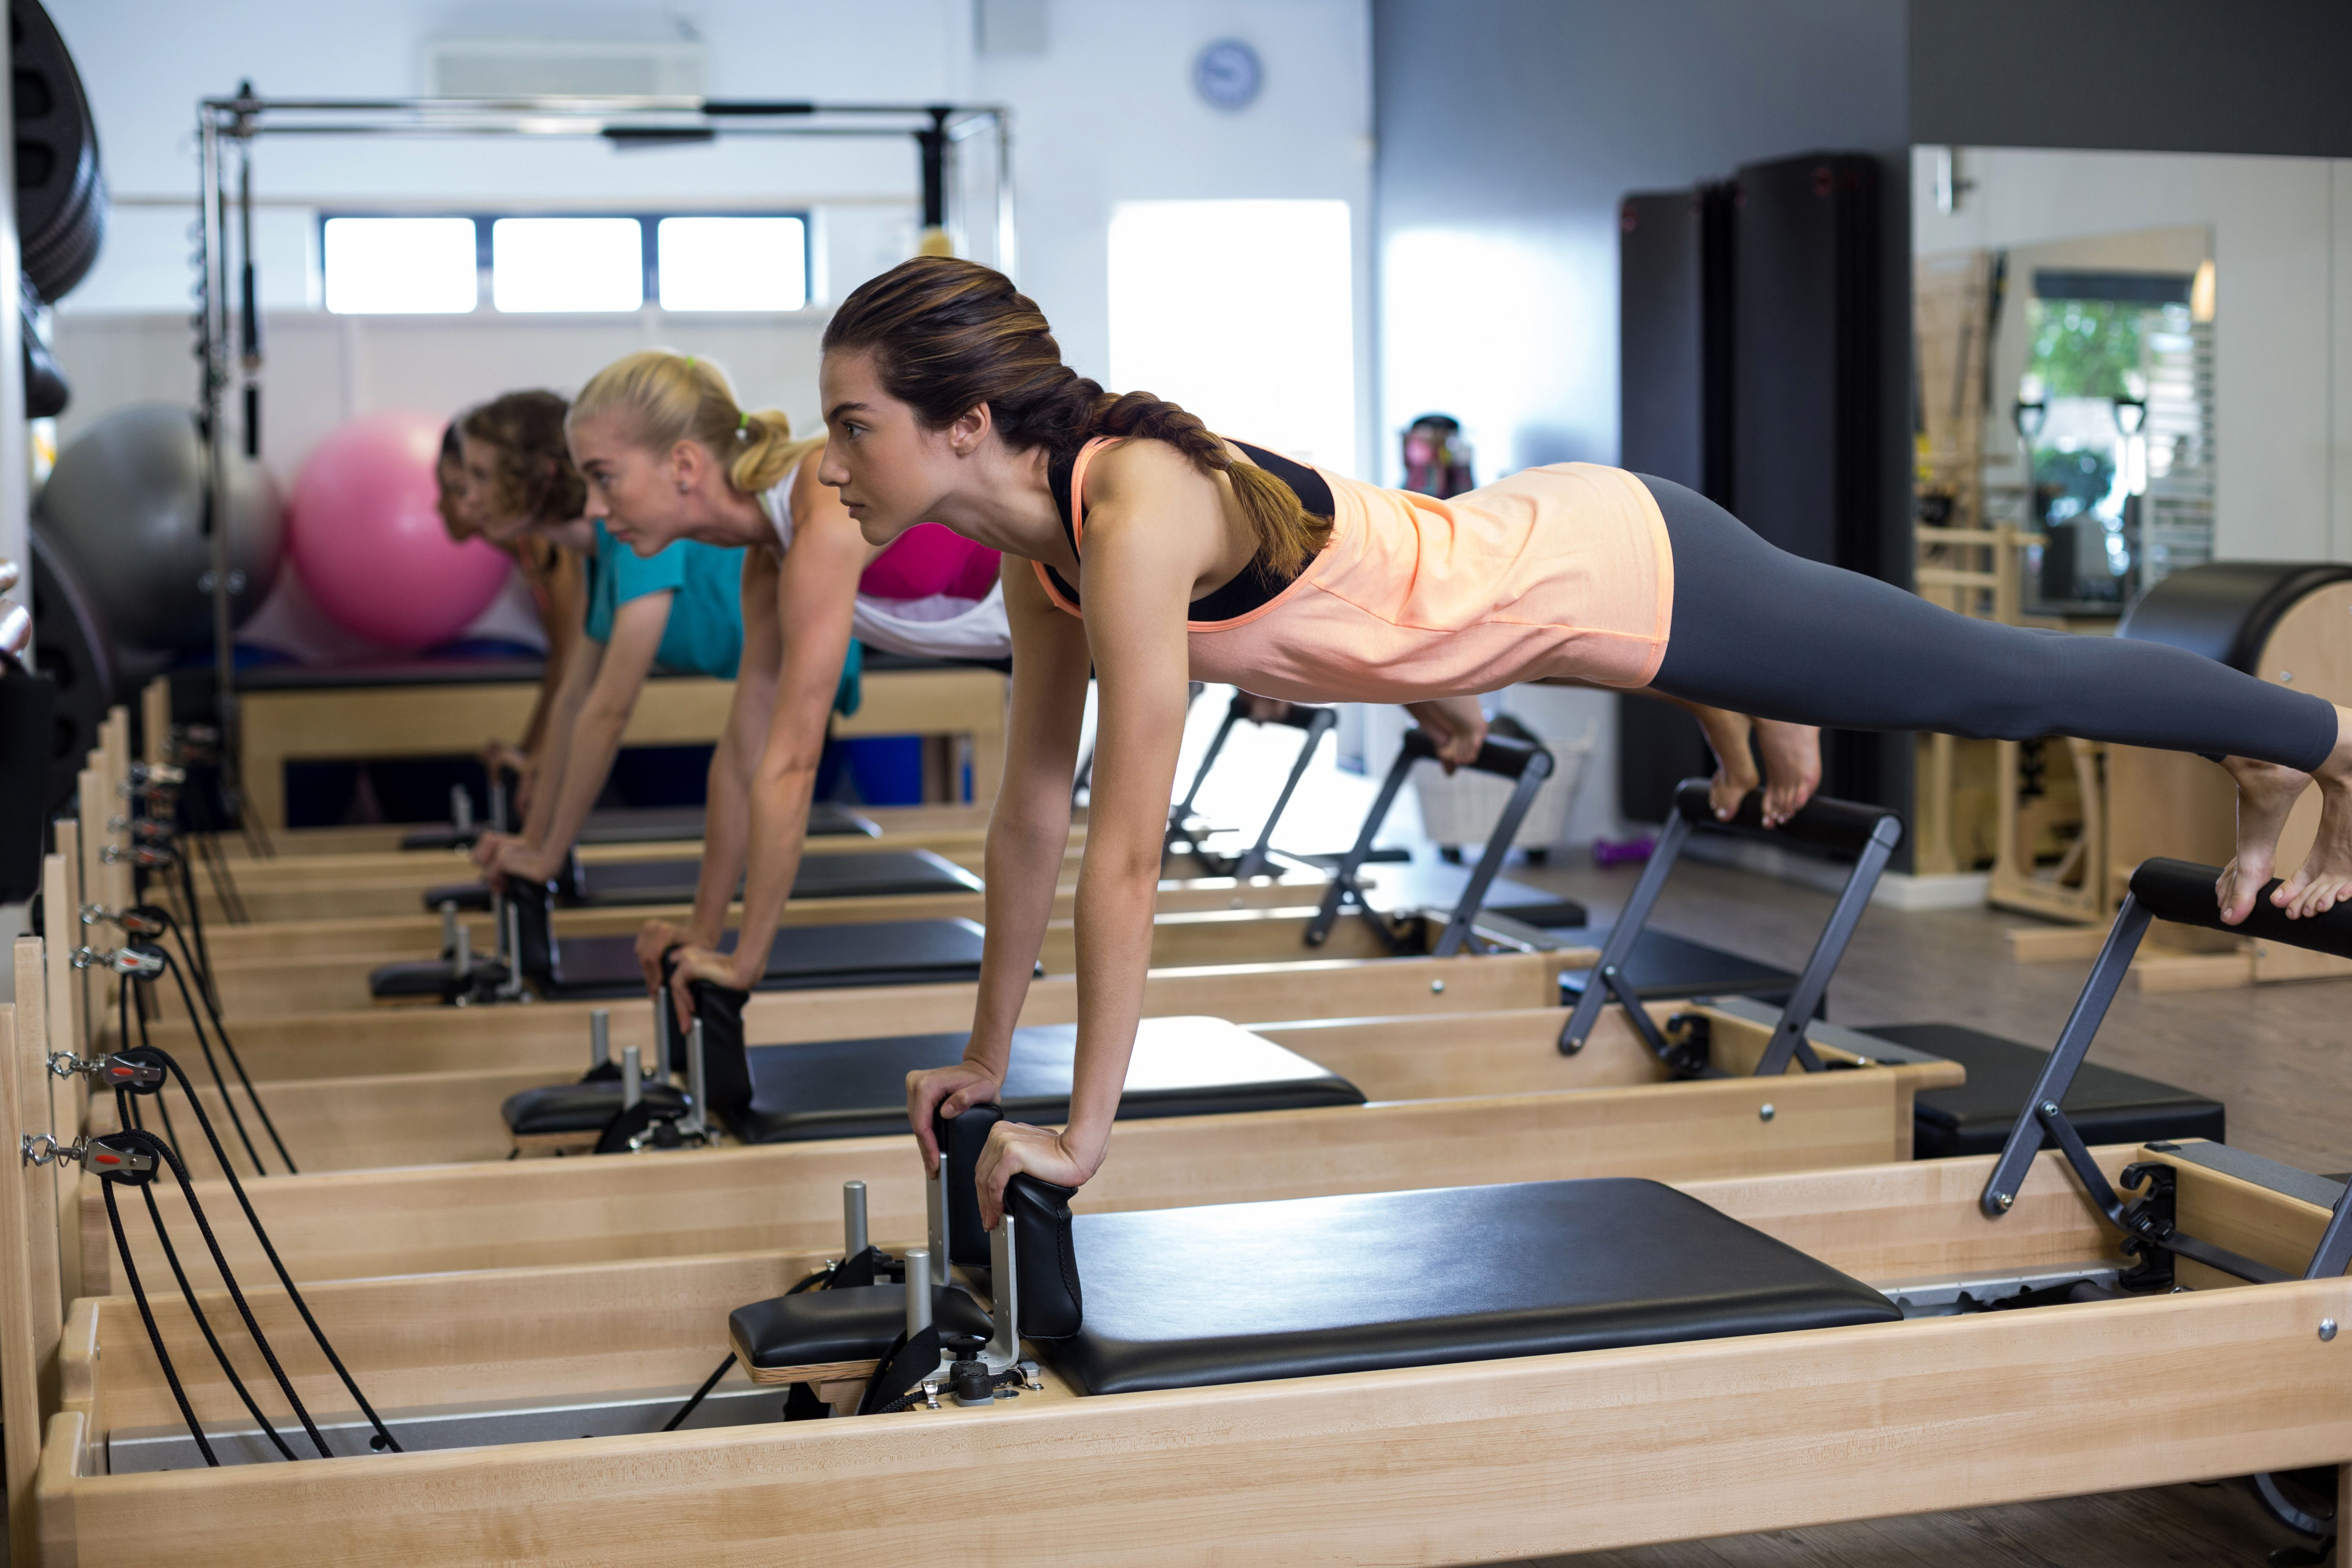 The 5 Best Stretches You Can Do On The Reformer Top 5 Pilates Reformer Pilates Reformer Exercises Pilates Workout